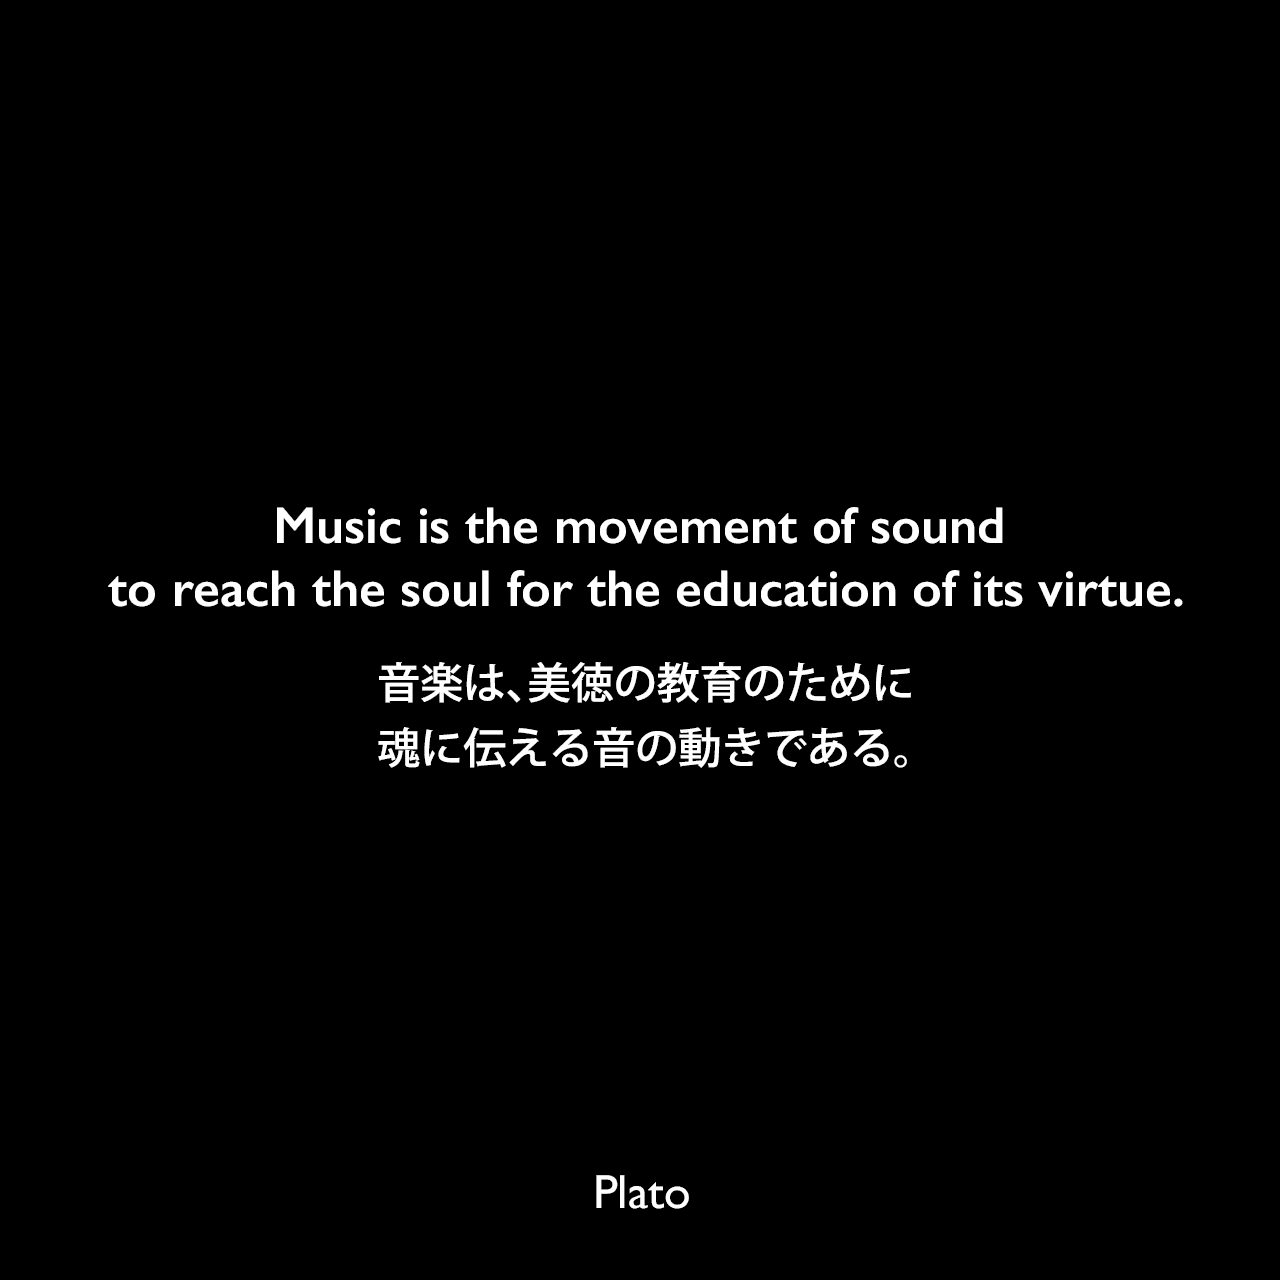 Music is the movement of sound to reach the soul for the education of its virtue.音楽は、美徳の教育のために魂に伝える音の動きである。Plato